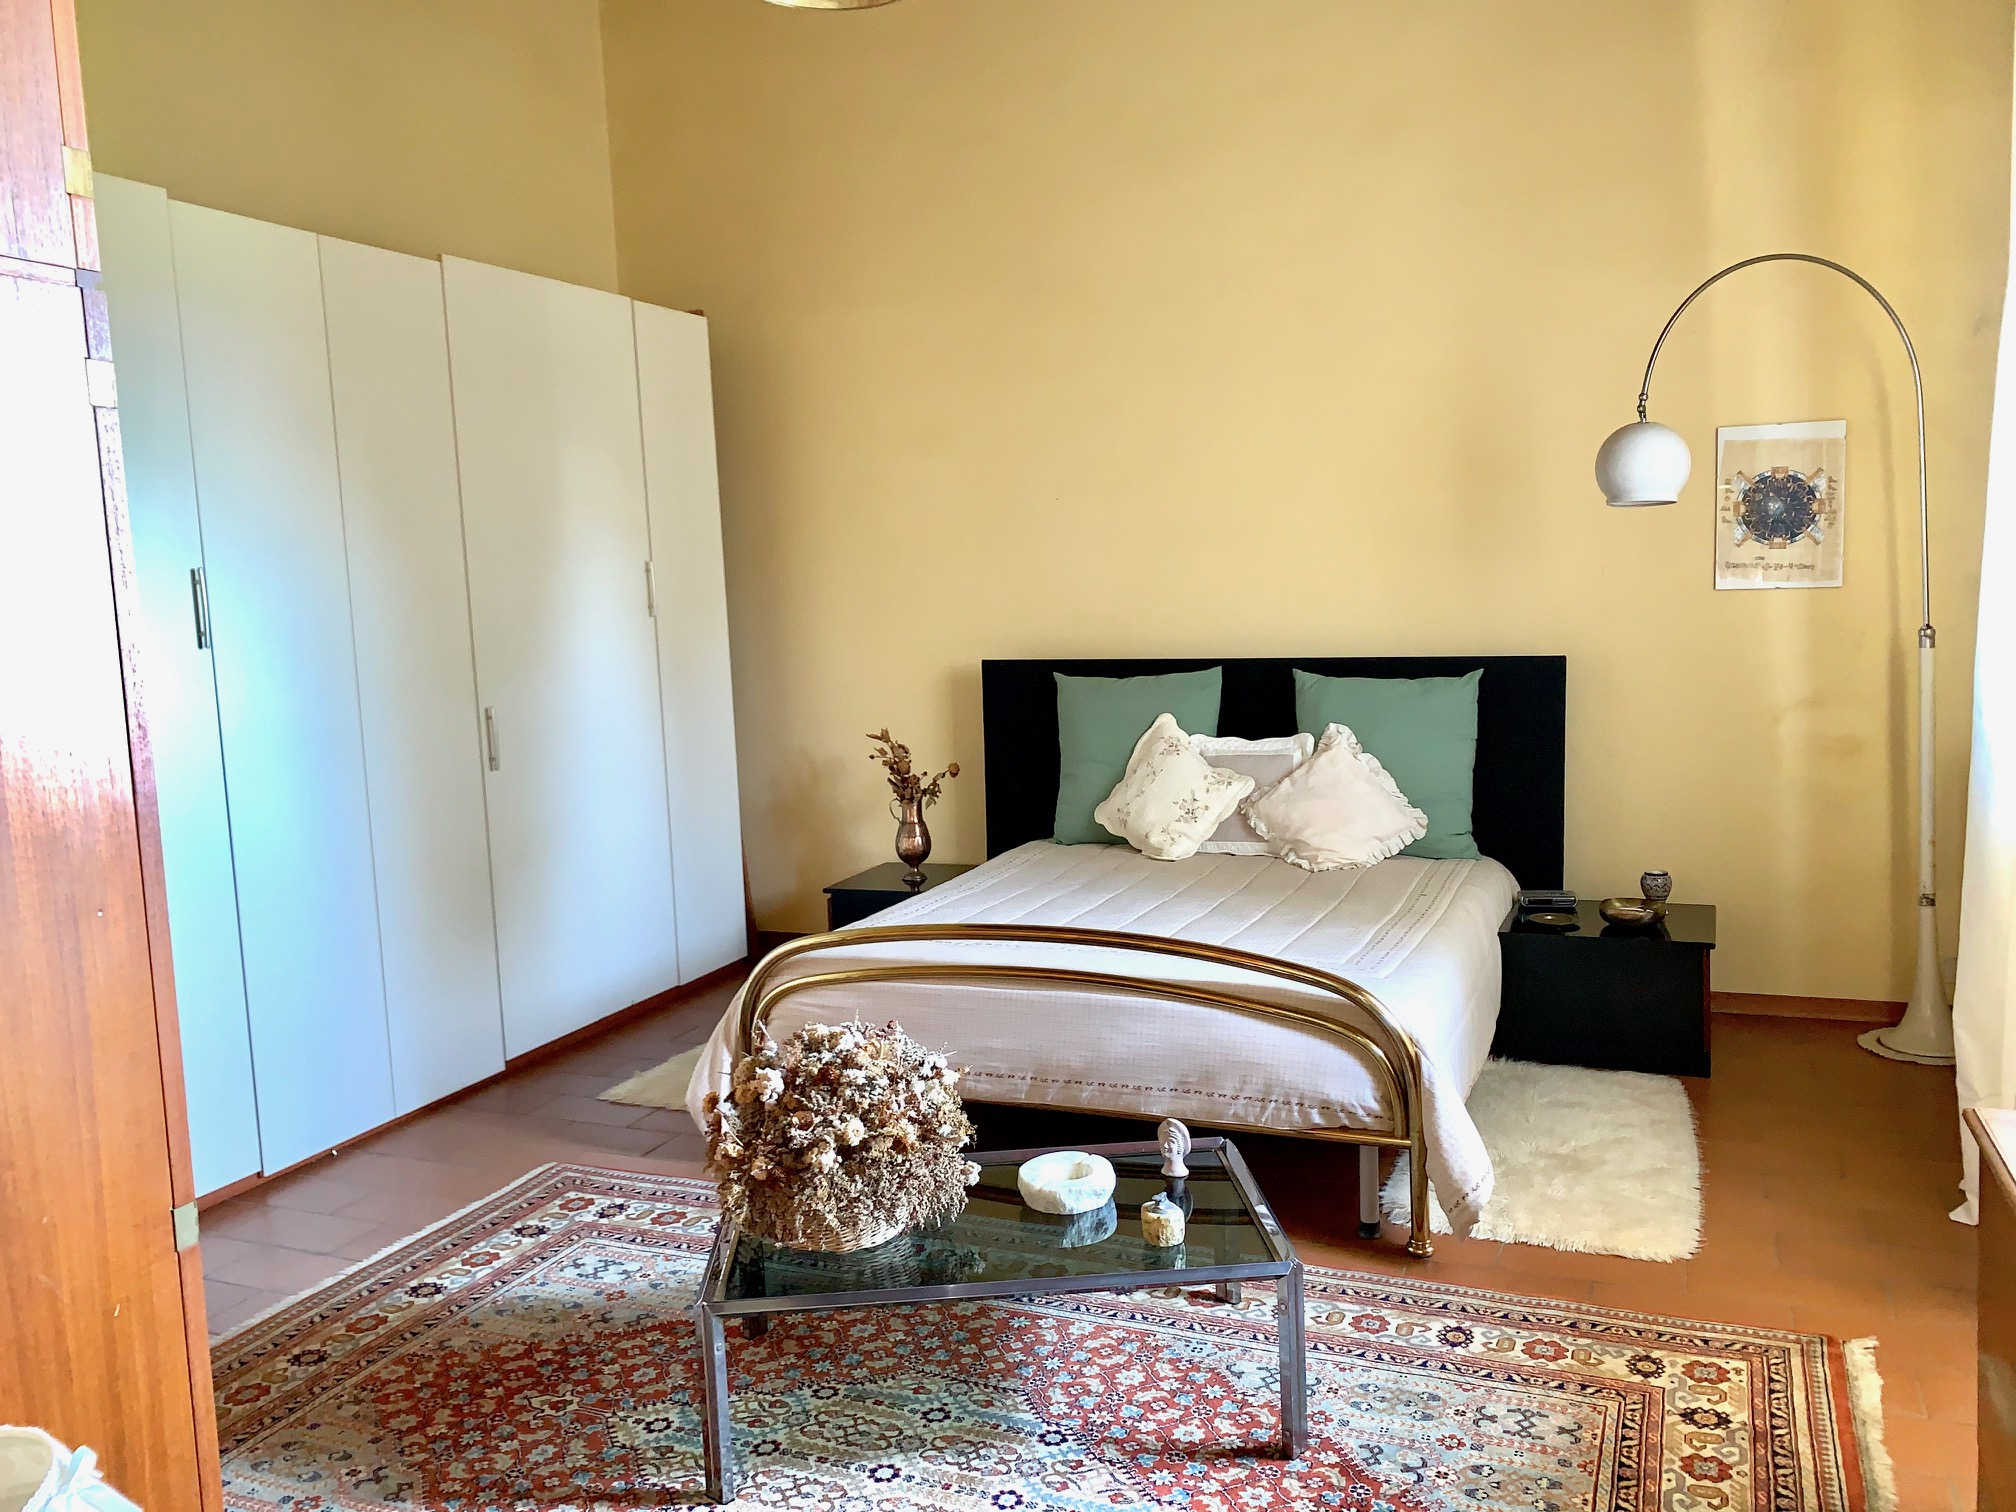 PISTOIA OVEST,PISTOIA,51100,7 Bedrooms Bedrooms,6 BathroomsBathrooms,Villa,PISTOIA OVEST,1334